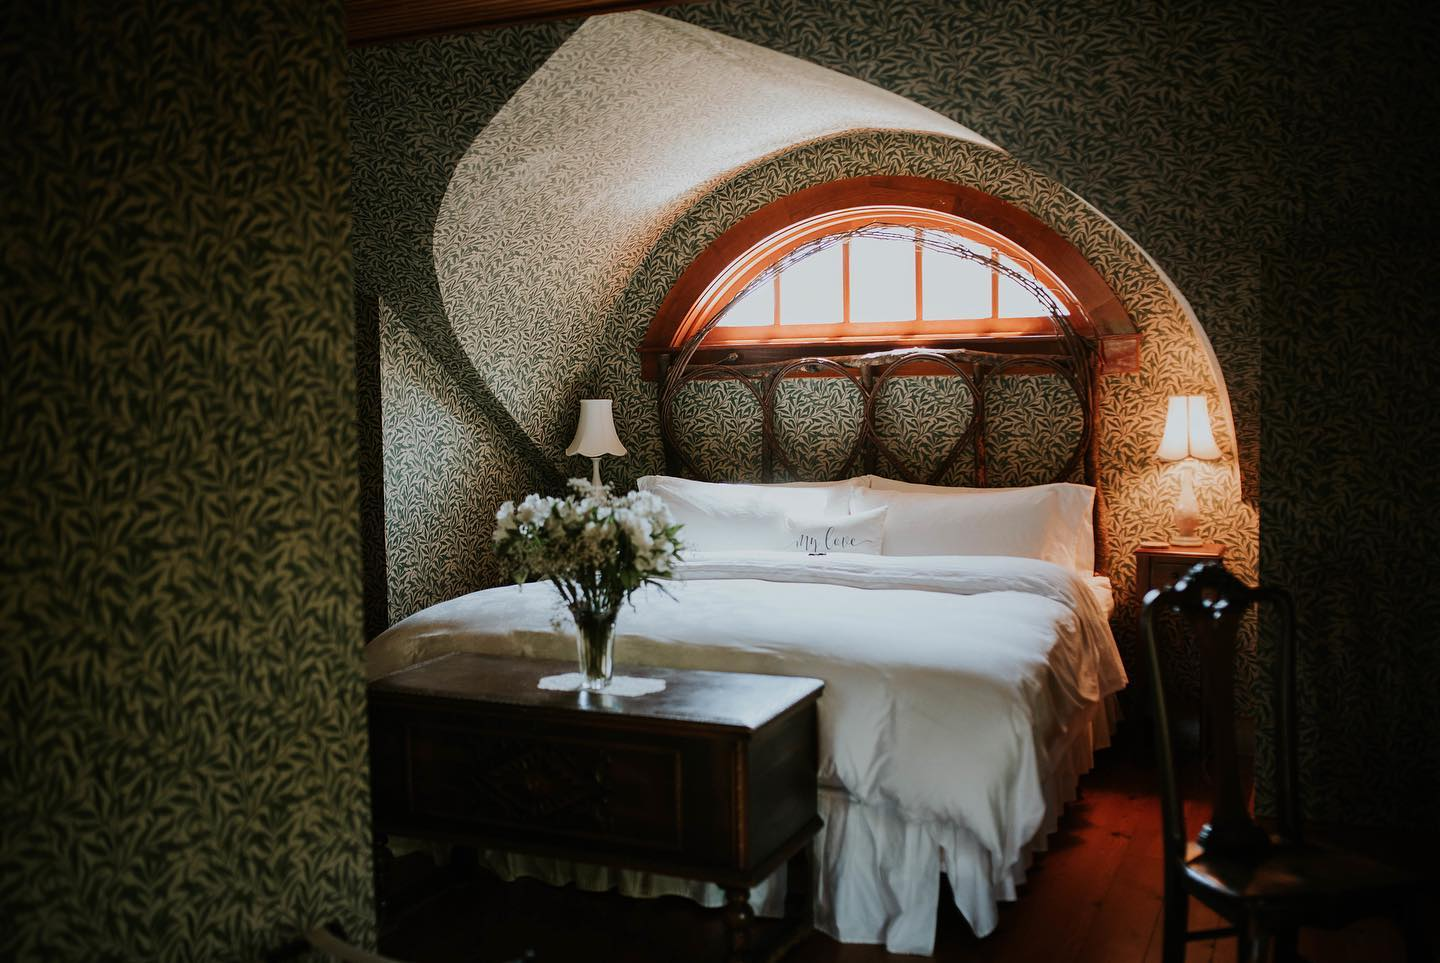 Willow Suite - View of the Bed